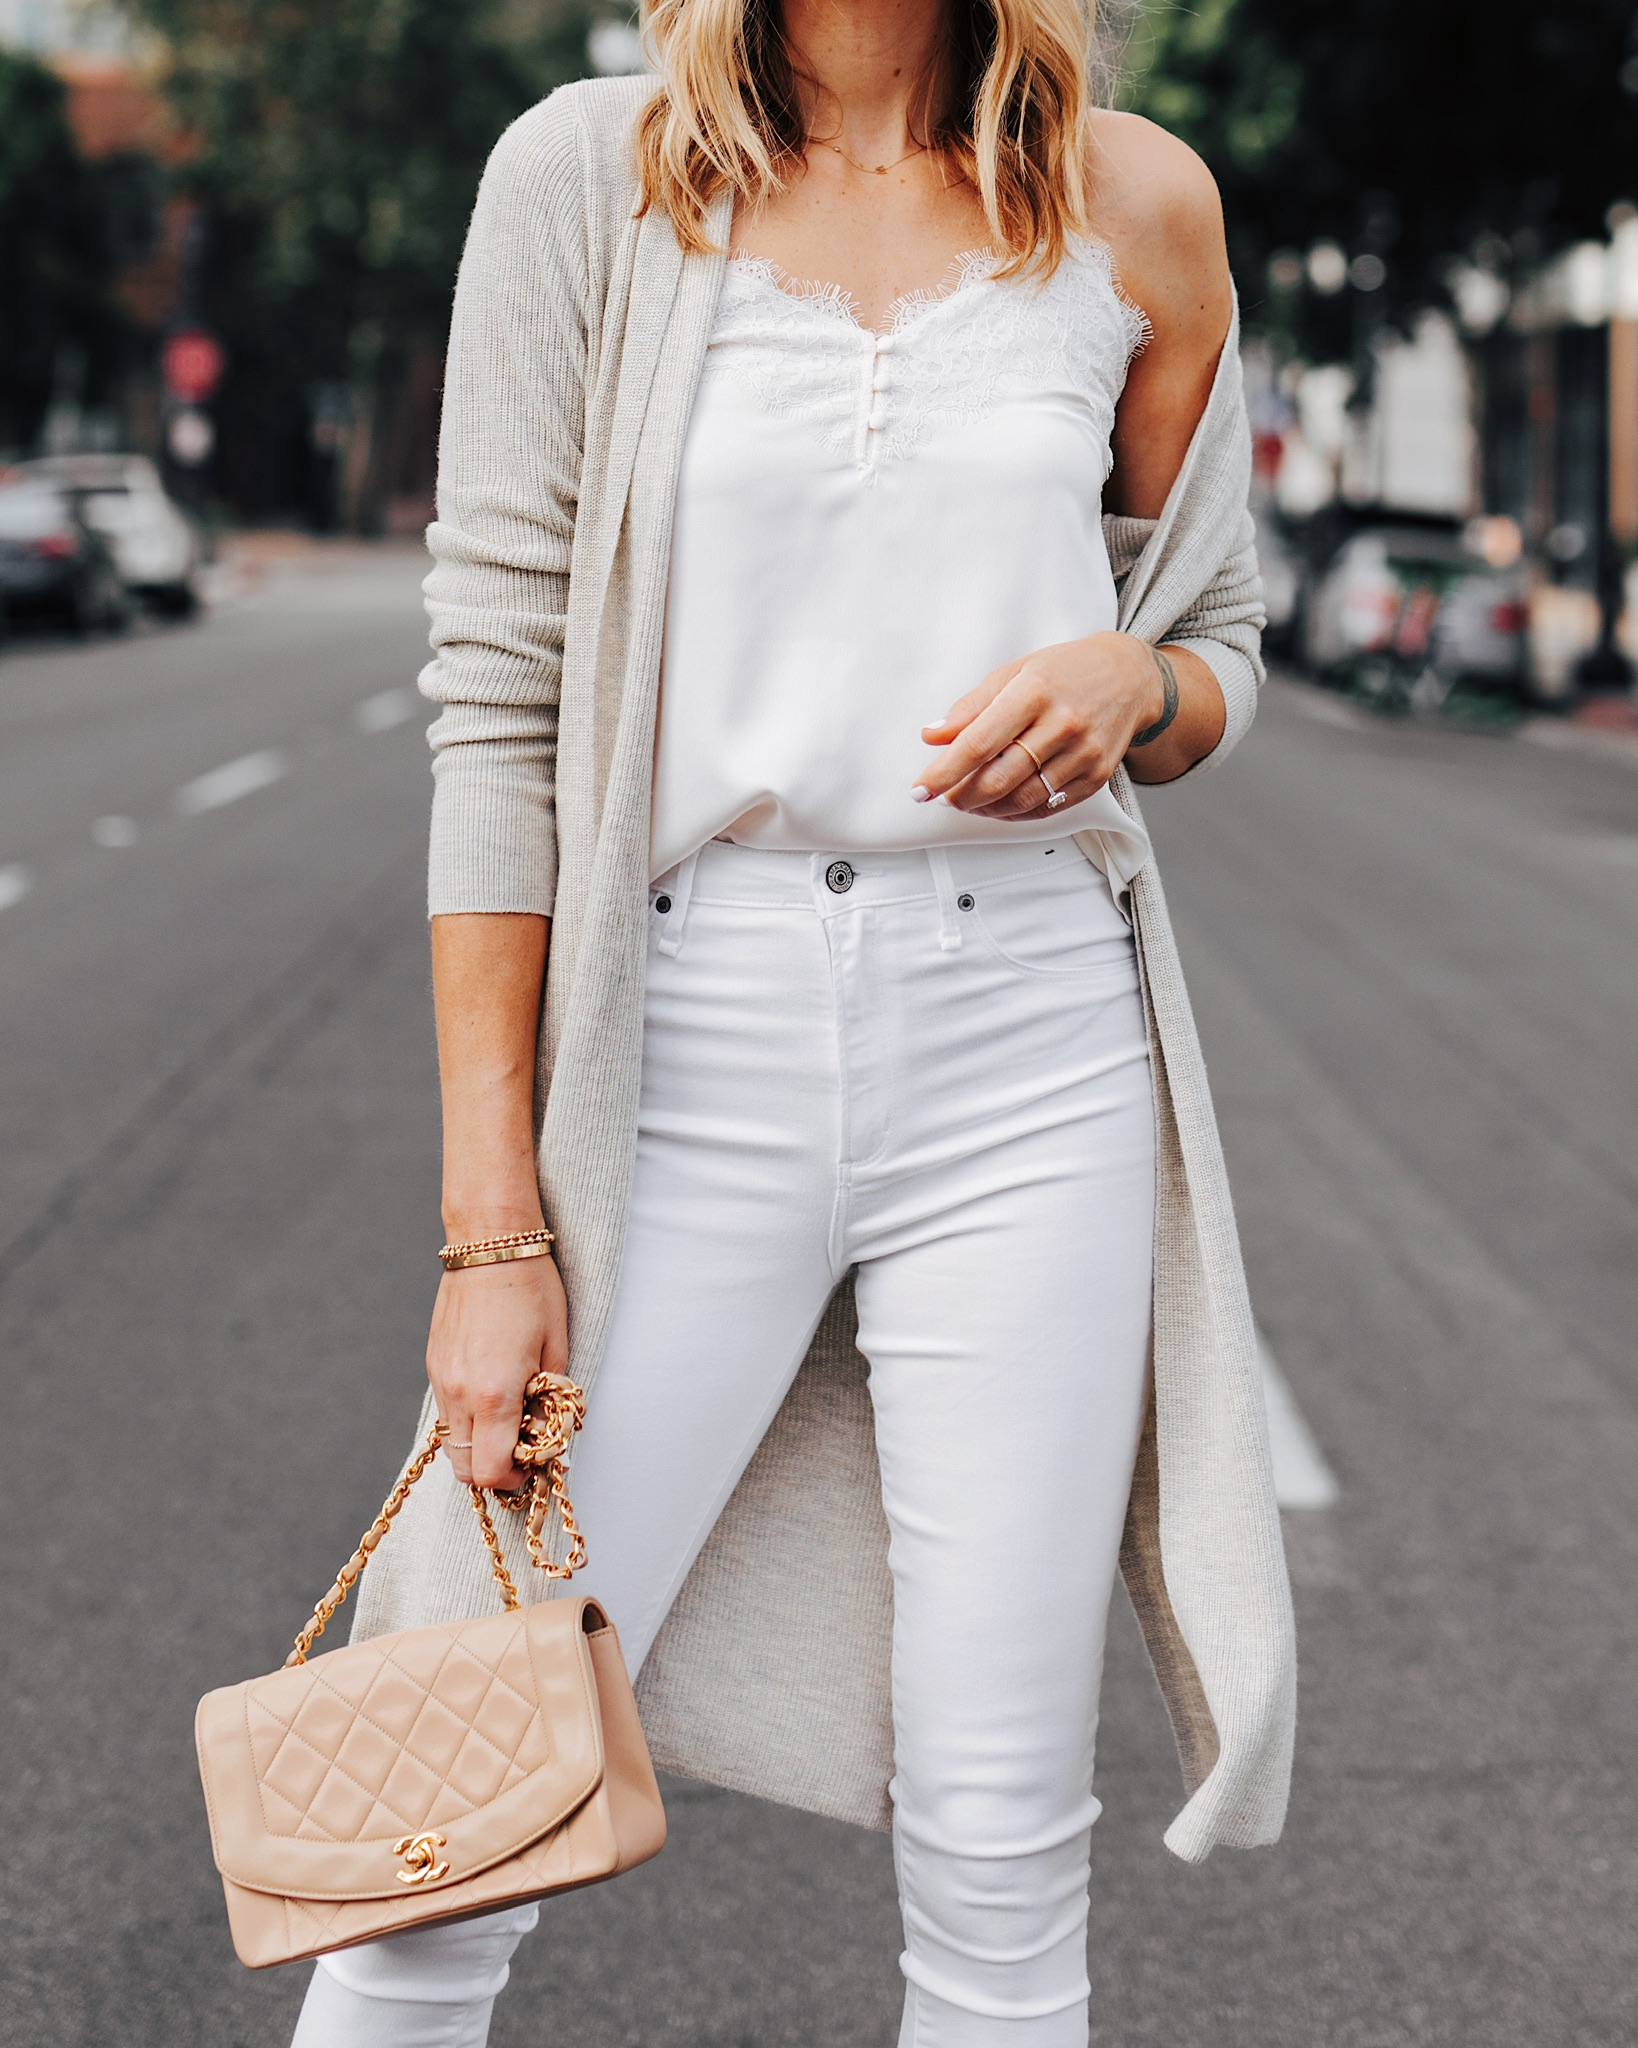 Fashion Jackson Wearing White Lace Cami Beige Cardigan White Skinny Jeans Tan Chanel Handbag